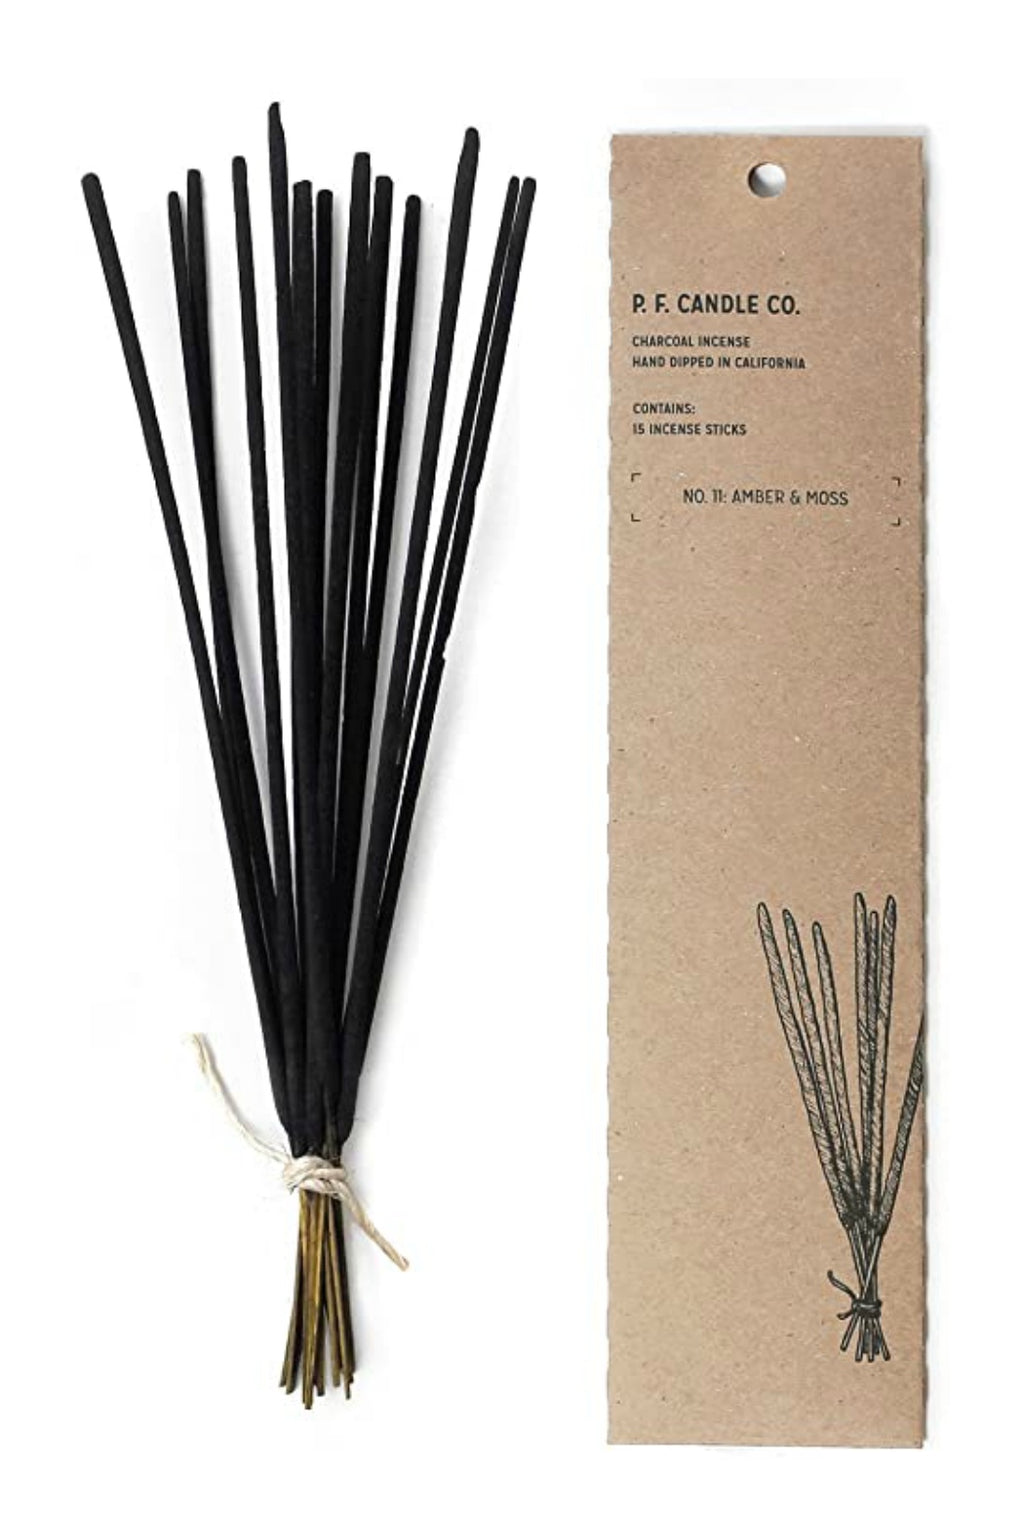 P.F. Candle Co Incense Sticks